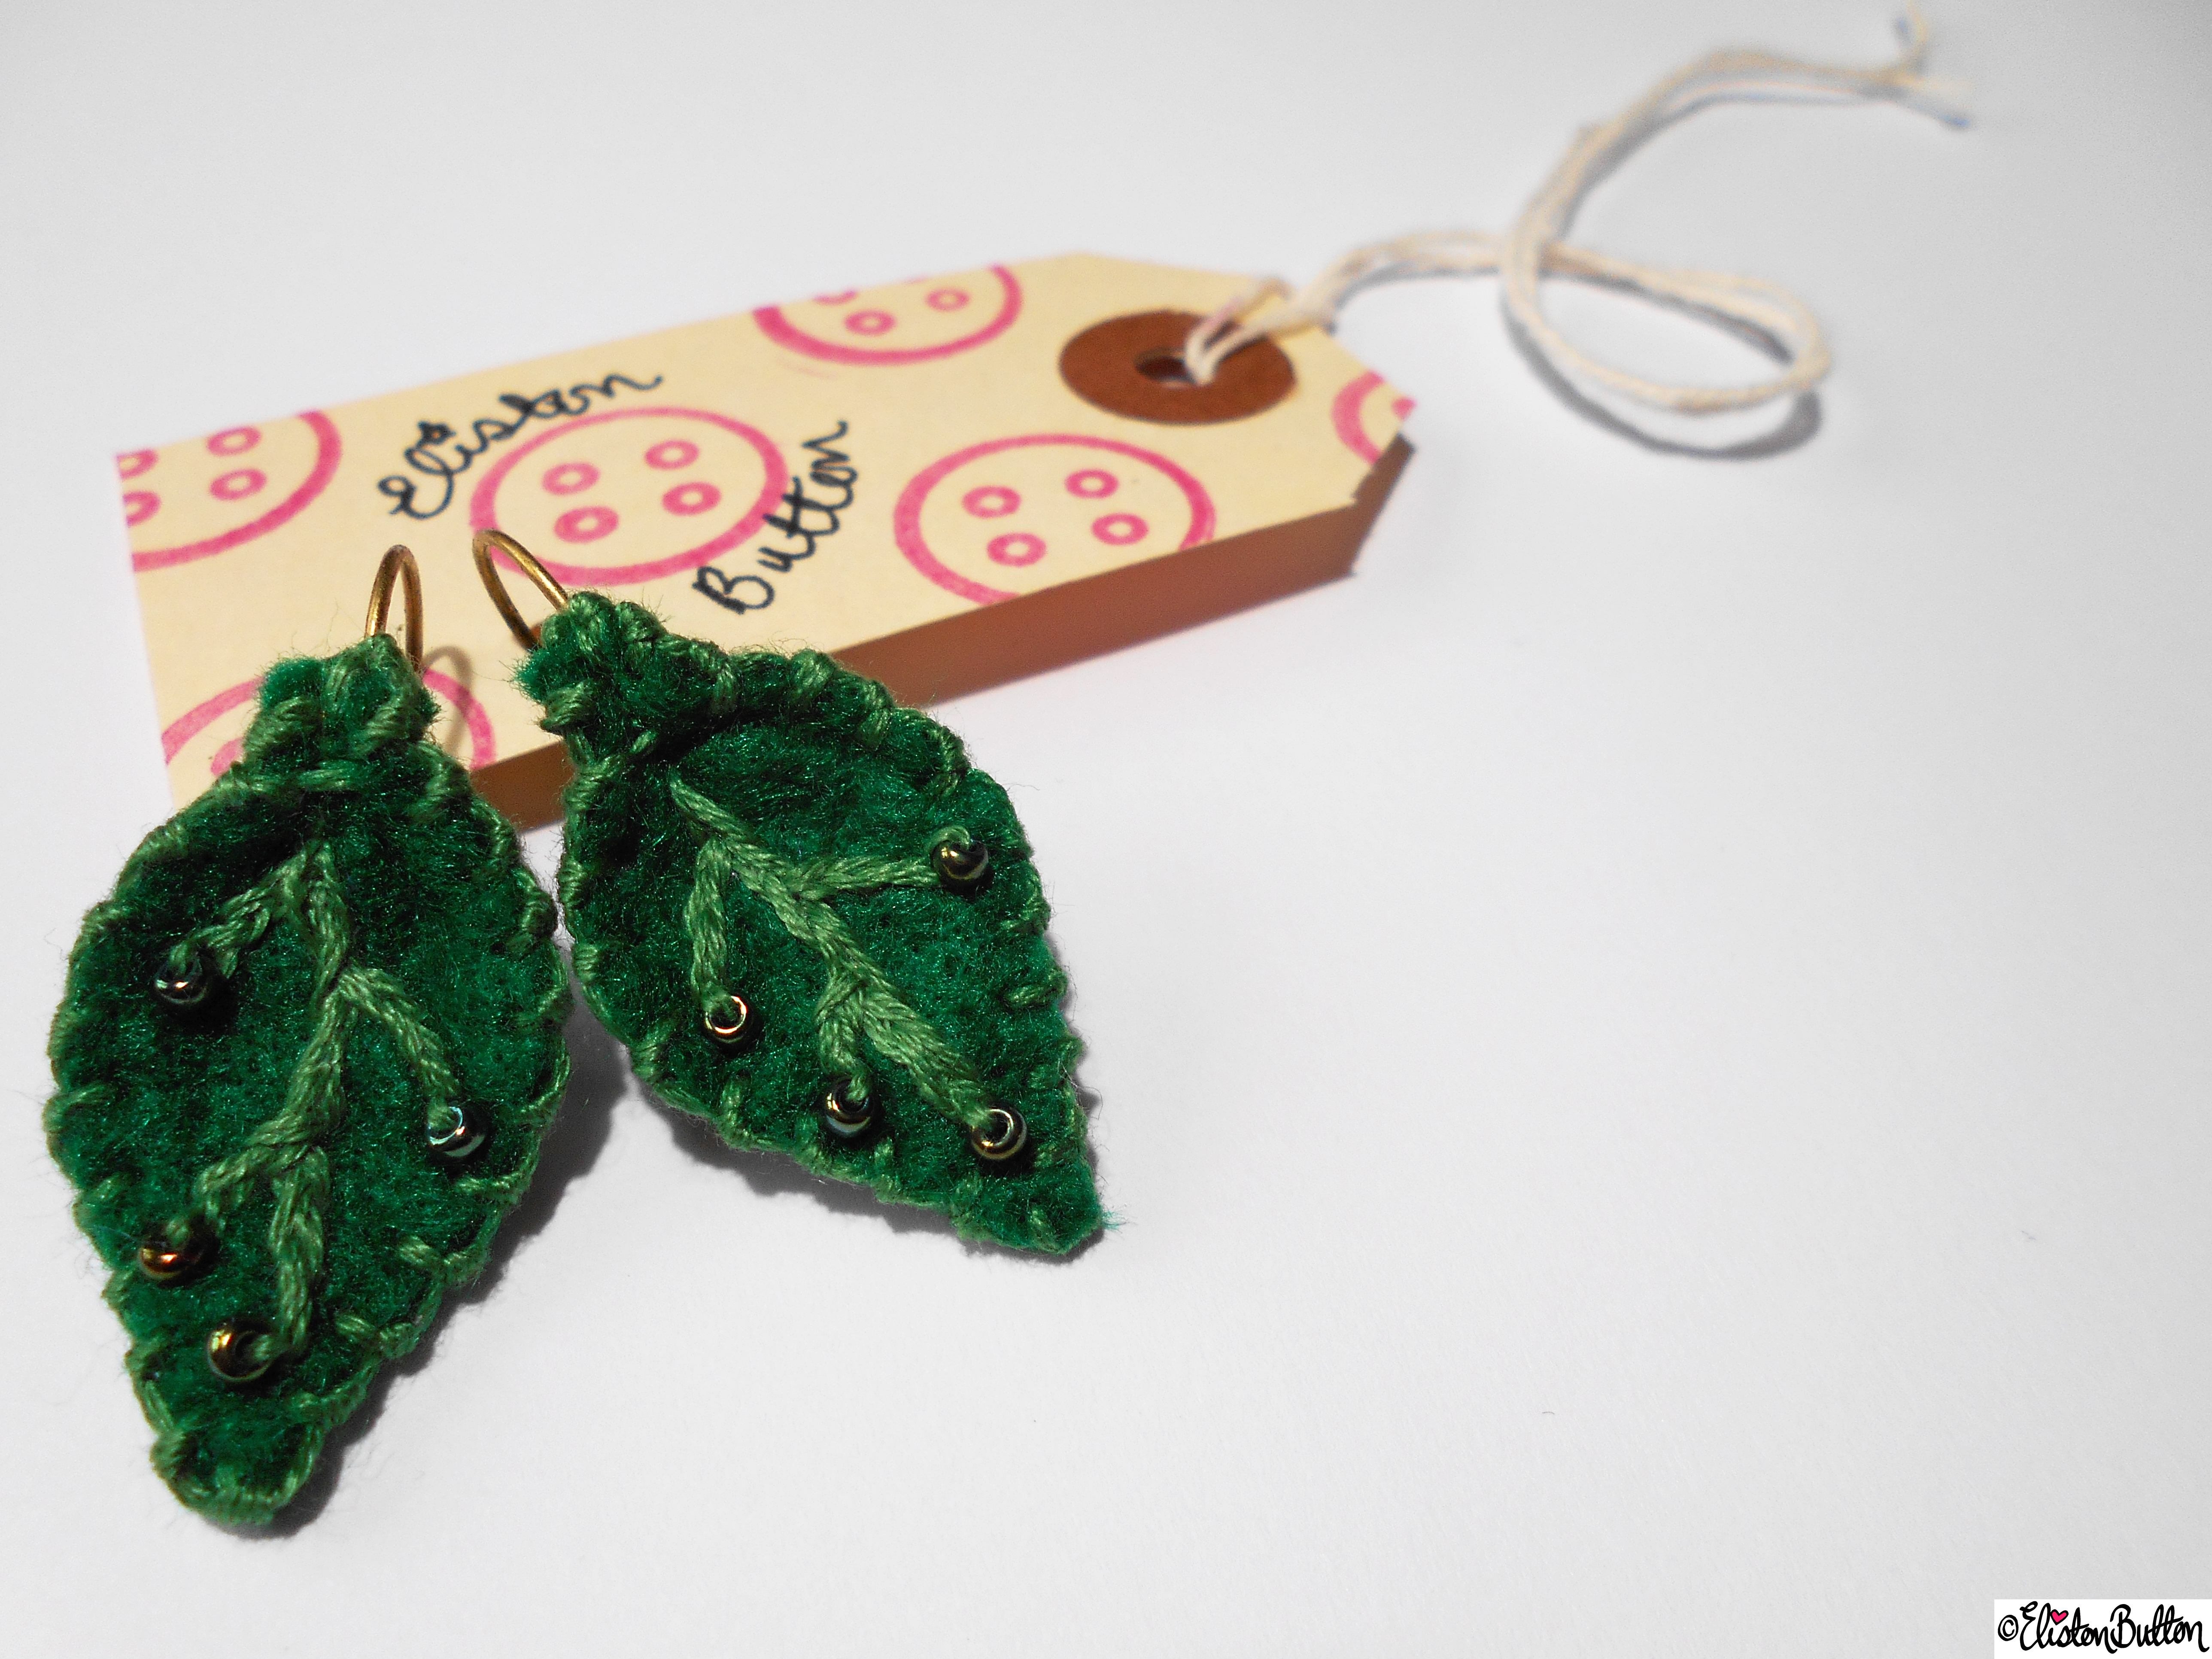 Leafy Green Emroidered and Hand Beaded Felt Leaf Earrings on Packaging - Create 28 - No.2 - Embroidered Felt Petal Earrings at www.elistonbutton.com - Eliston Button - That Crafty Kid – Art, Design, Craft & Adventure.